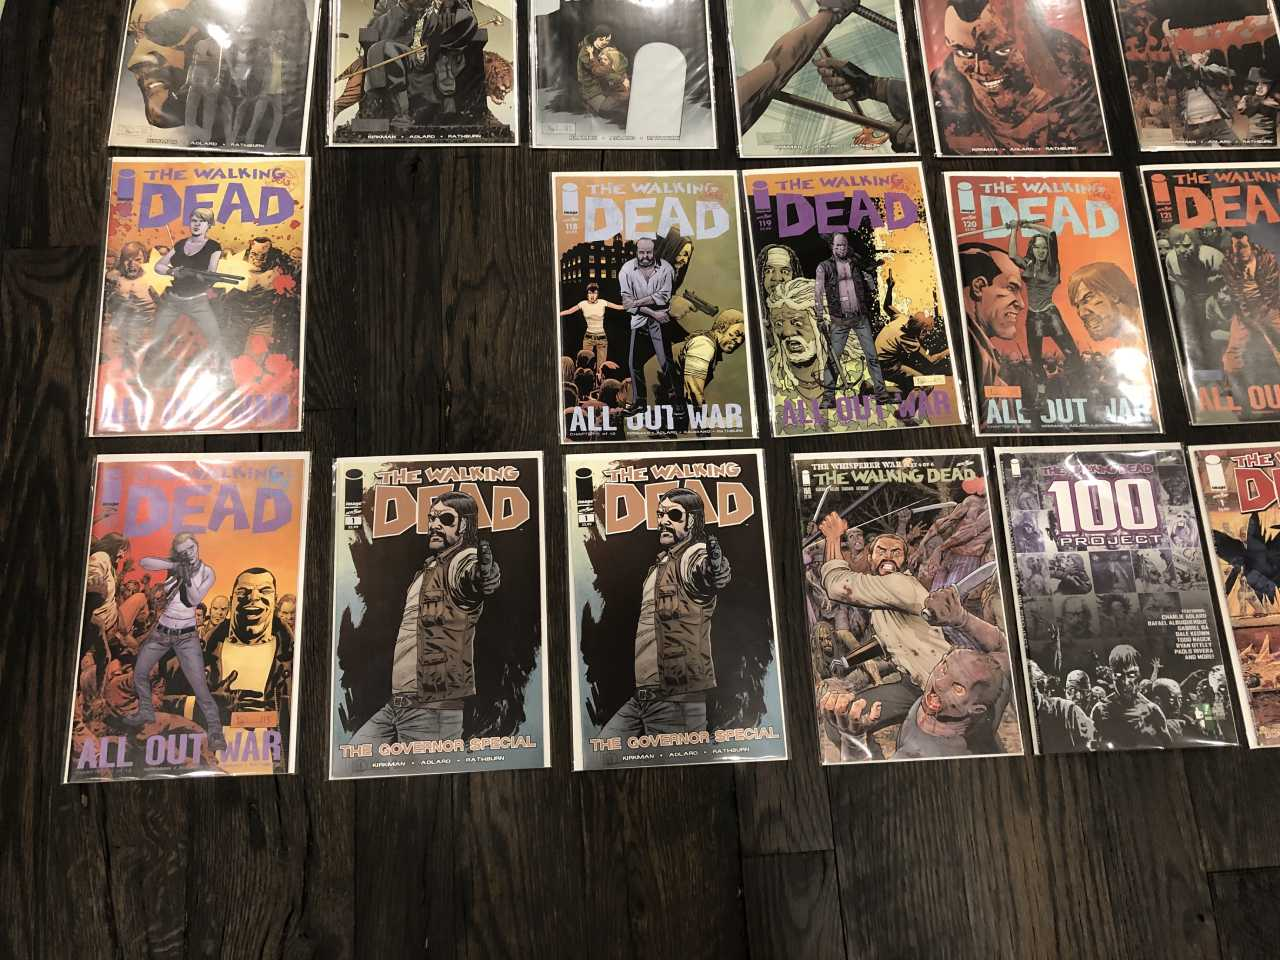 Walking Dead Comic Books for Sale - Lower Left